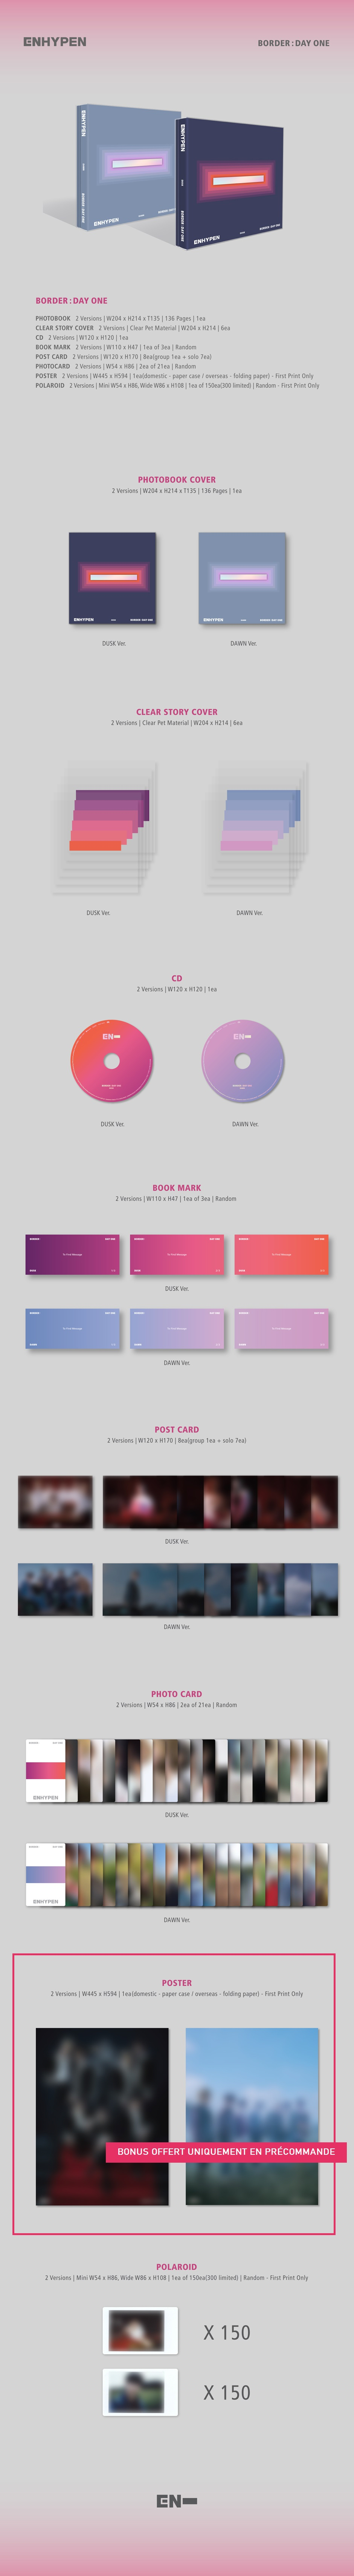 ENHYPEN Border - Day One album packaging.png